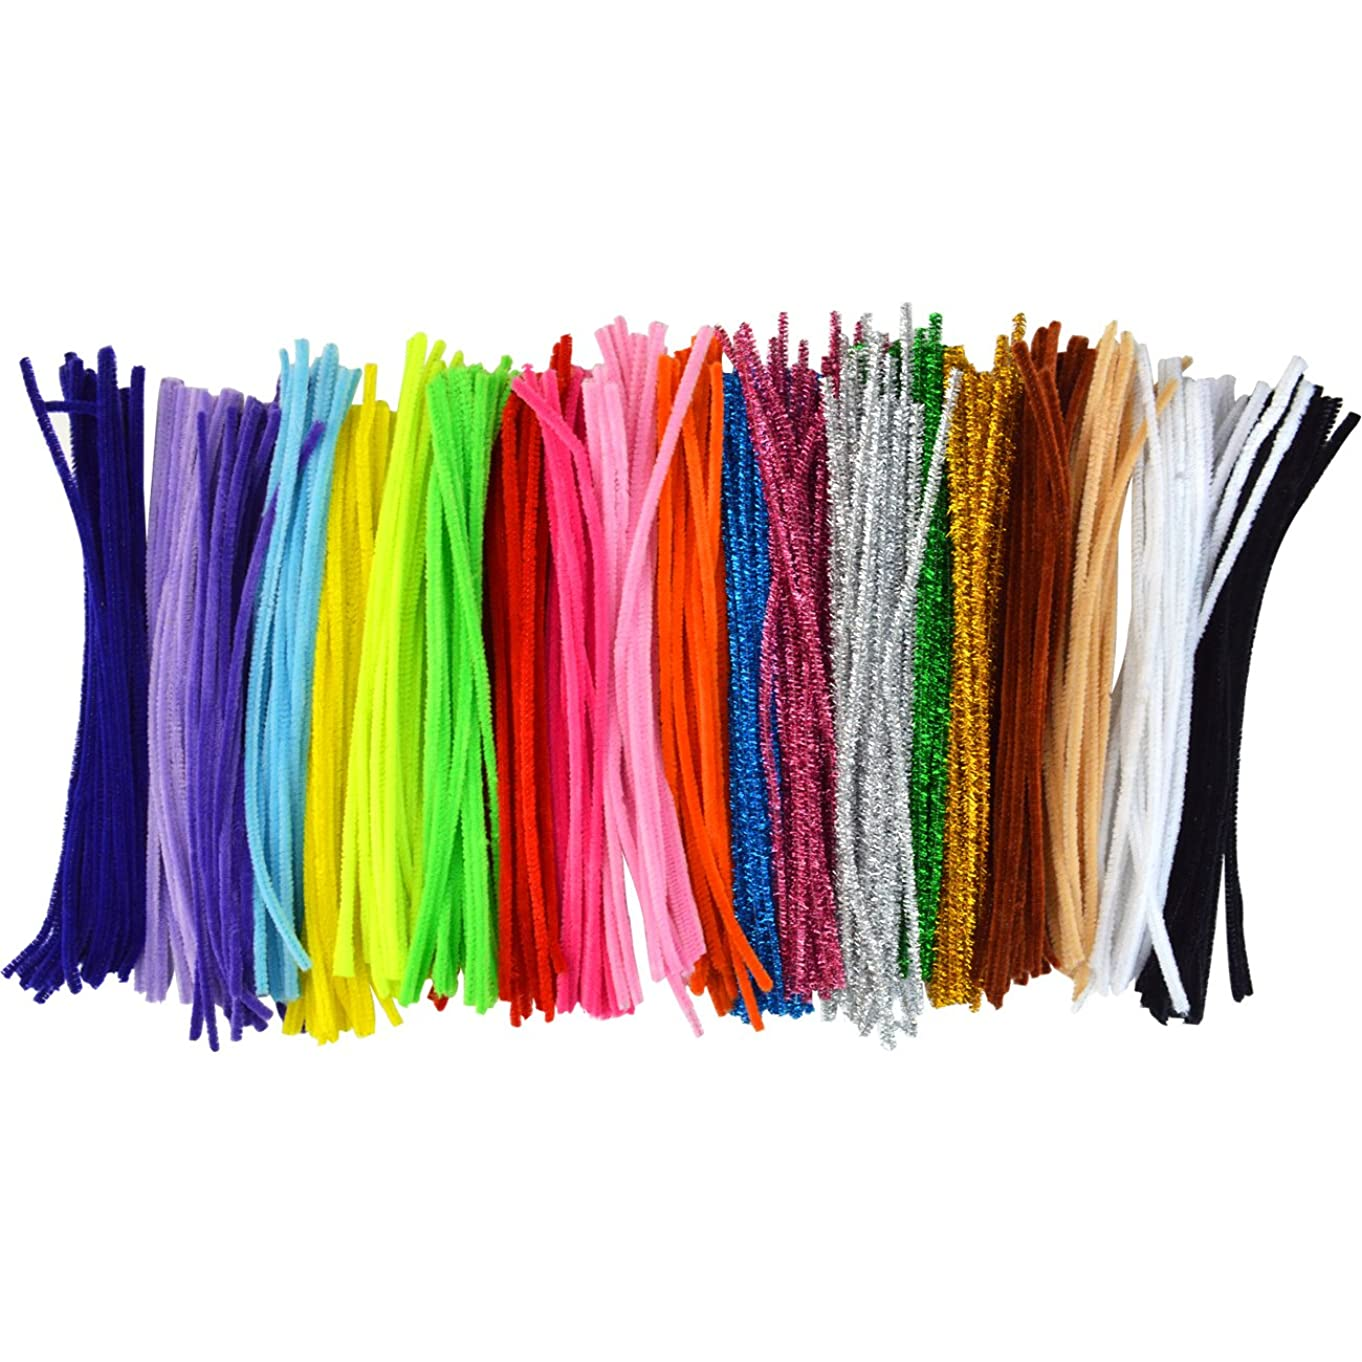 Pistha 400Pcs Craft Pipe Cleaners Chenille Stem 6mm x 12 inch Reusable Craft Bendable Twistable Children Puzzle Kindergarten Handmade DIY Art Supplies Home Decor Assorted Colors Assorted Colors